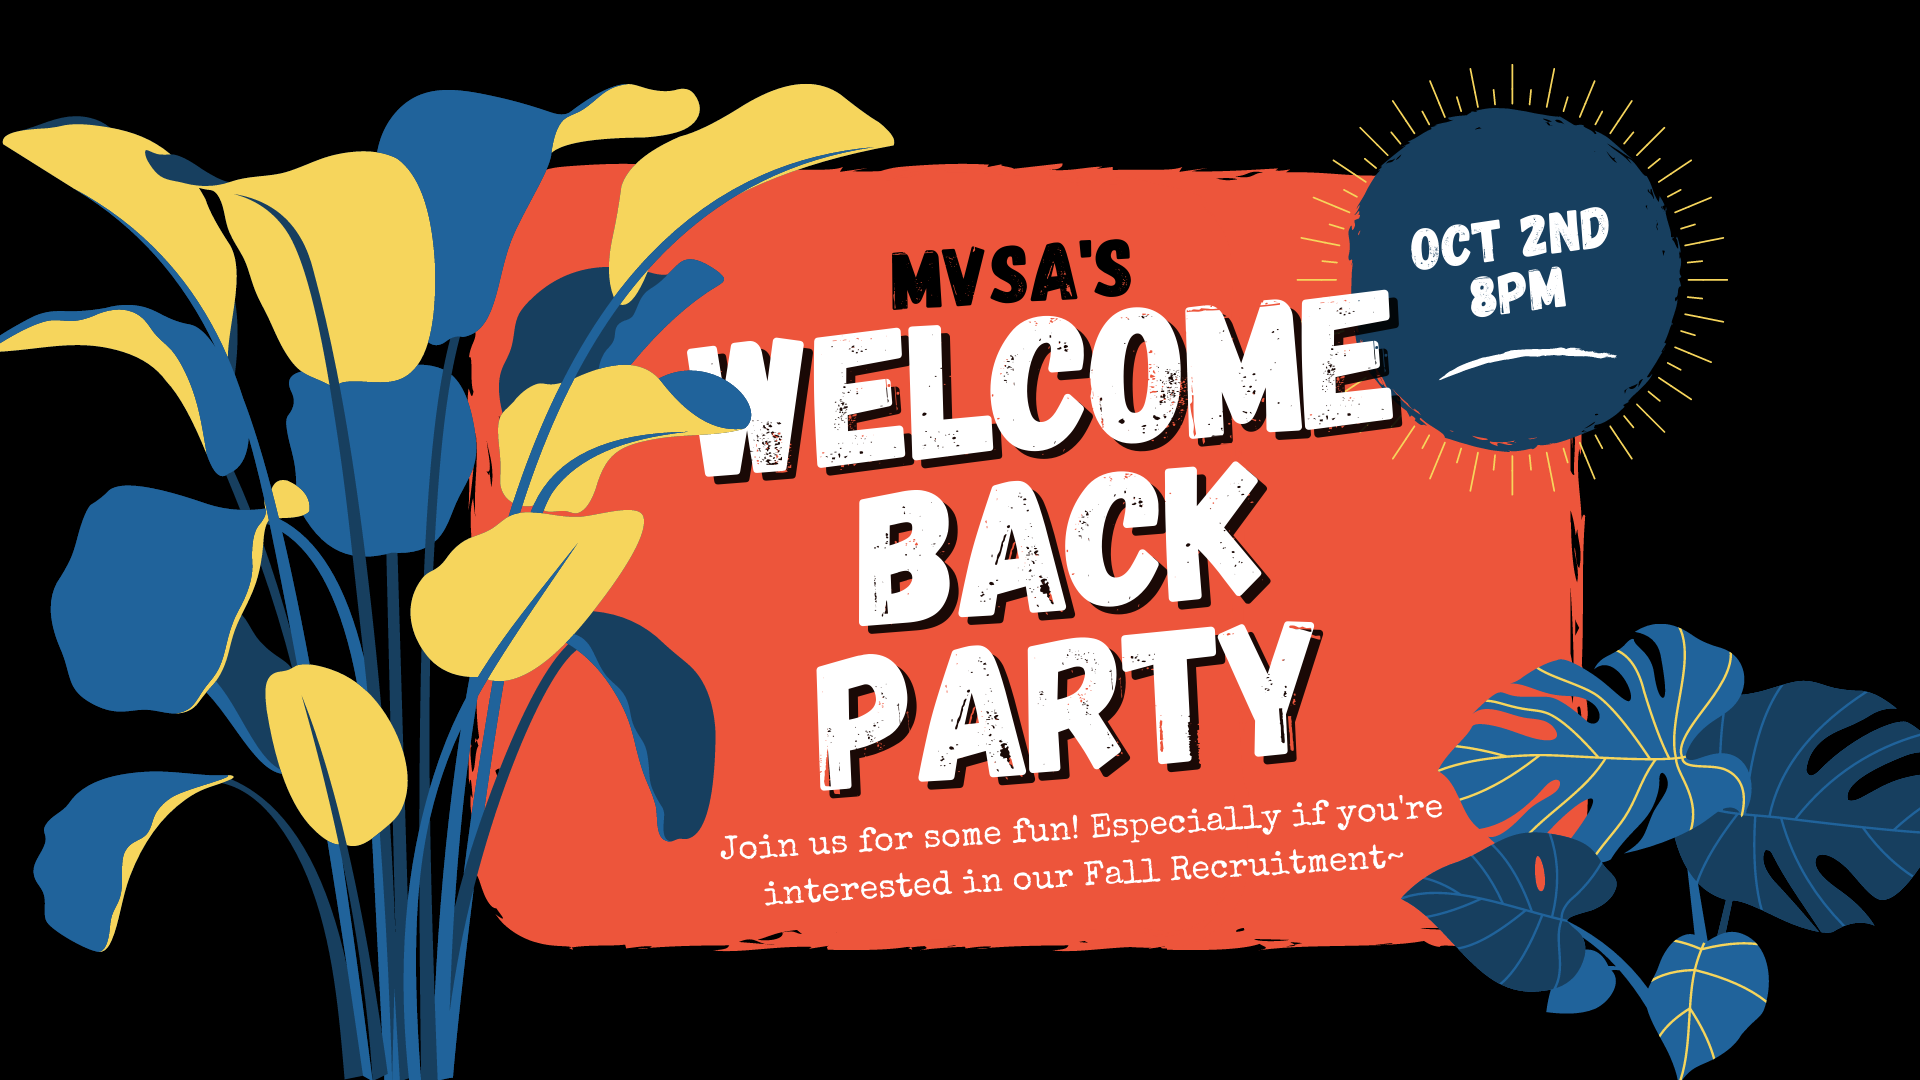 MVSA's Welcome Back Party